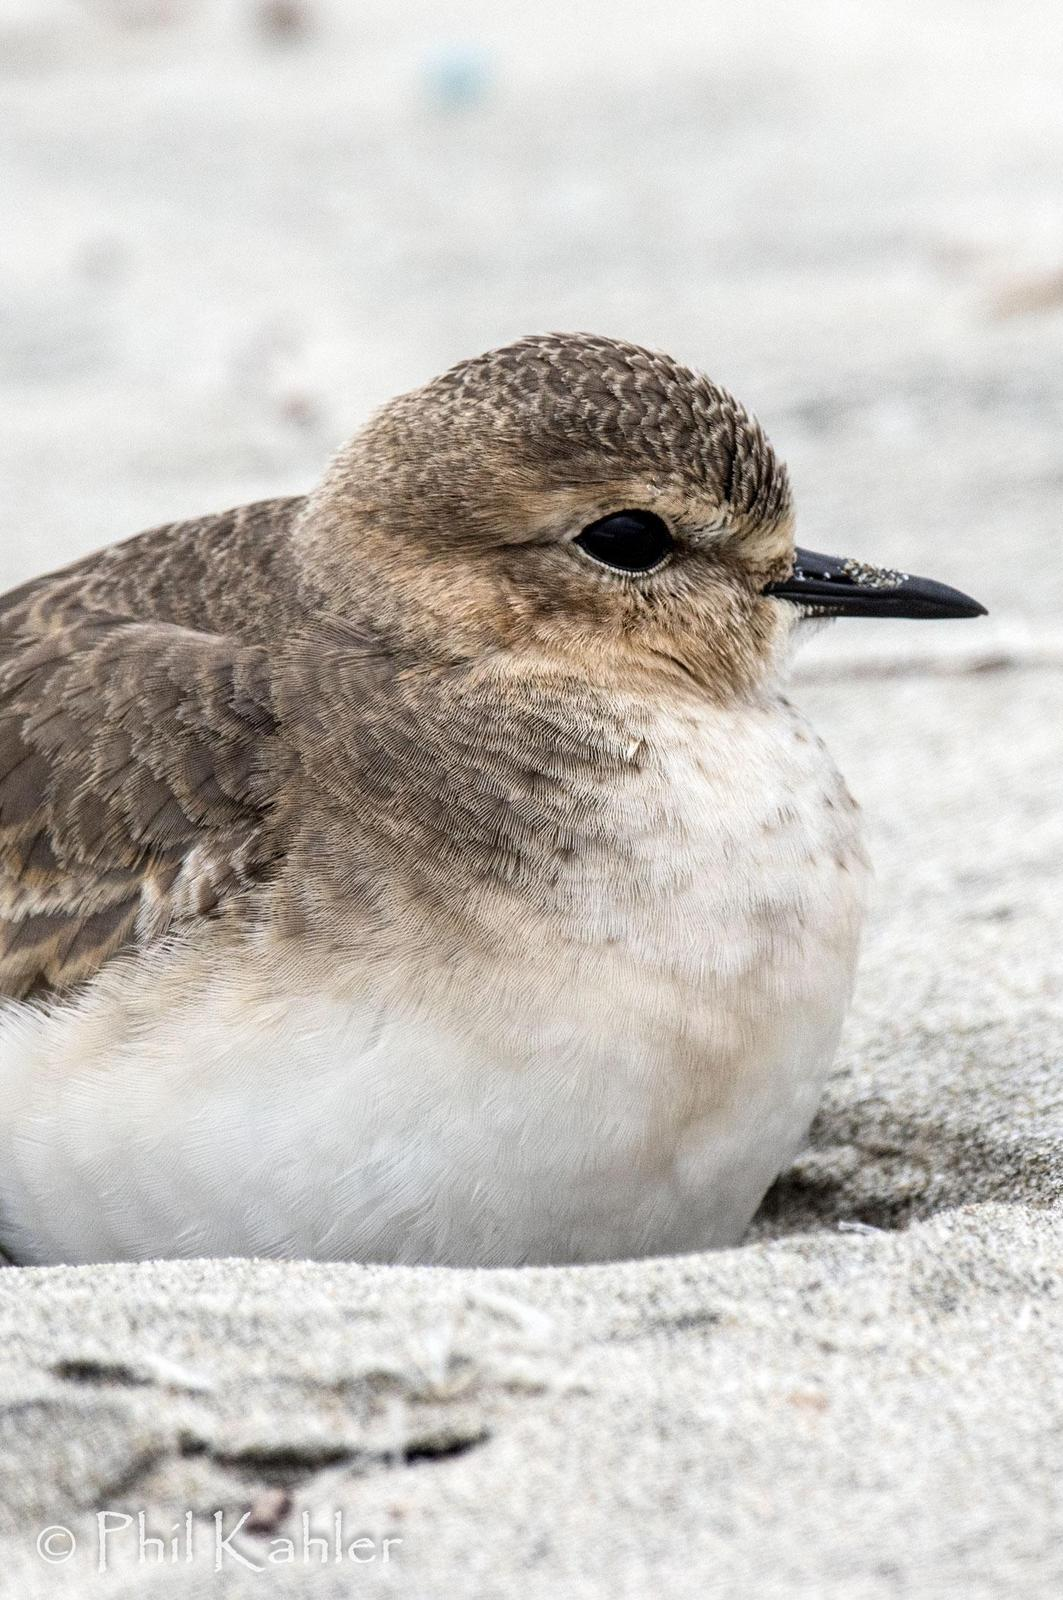 Mountain Plover Photo by Phil Kahler